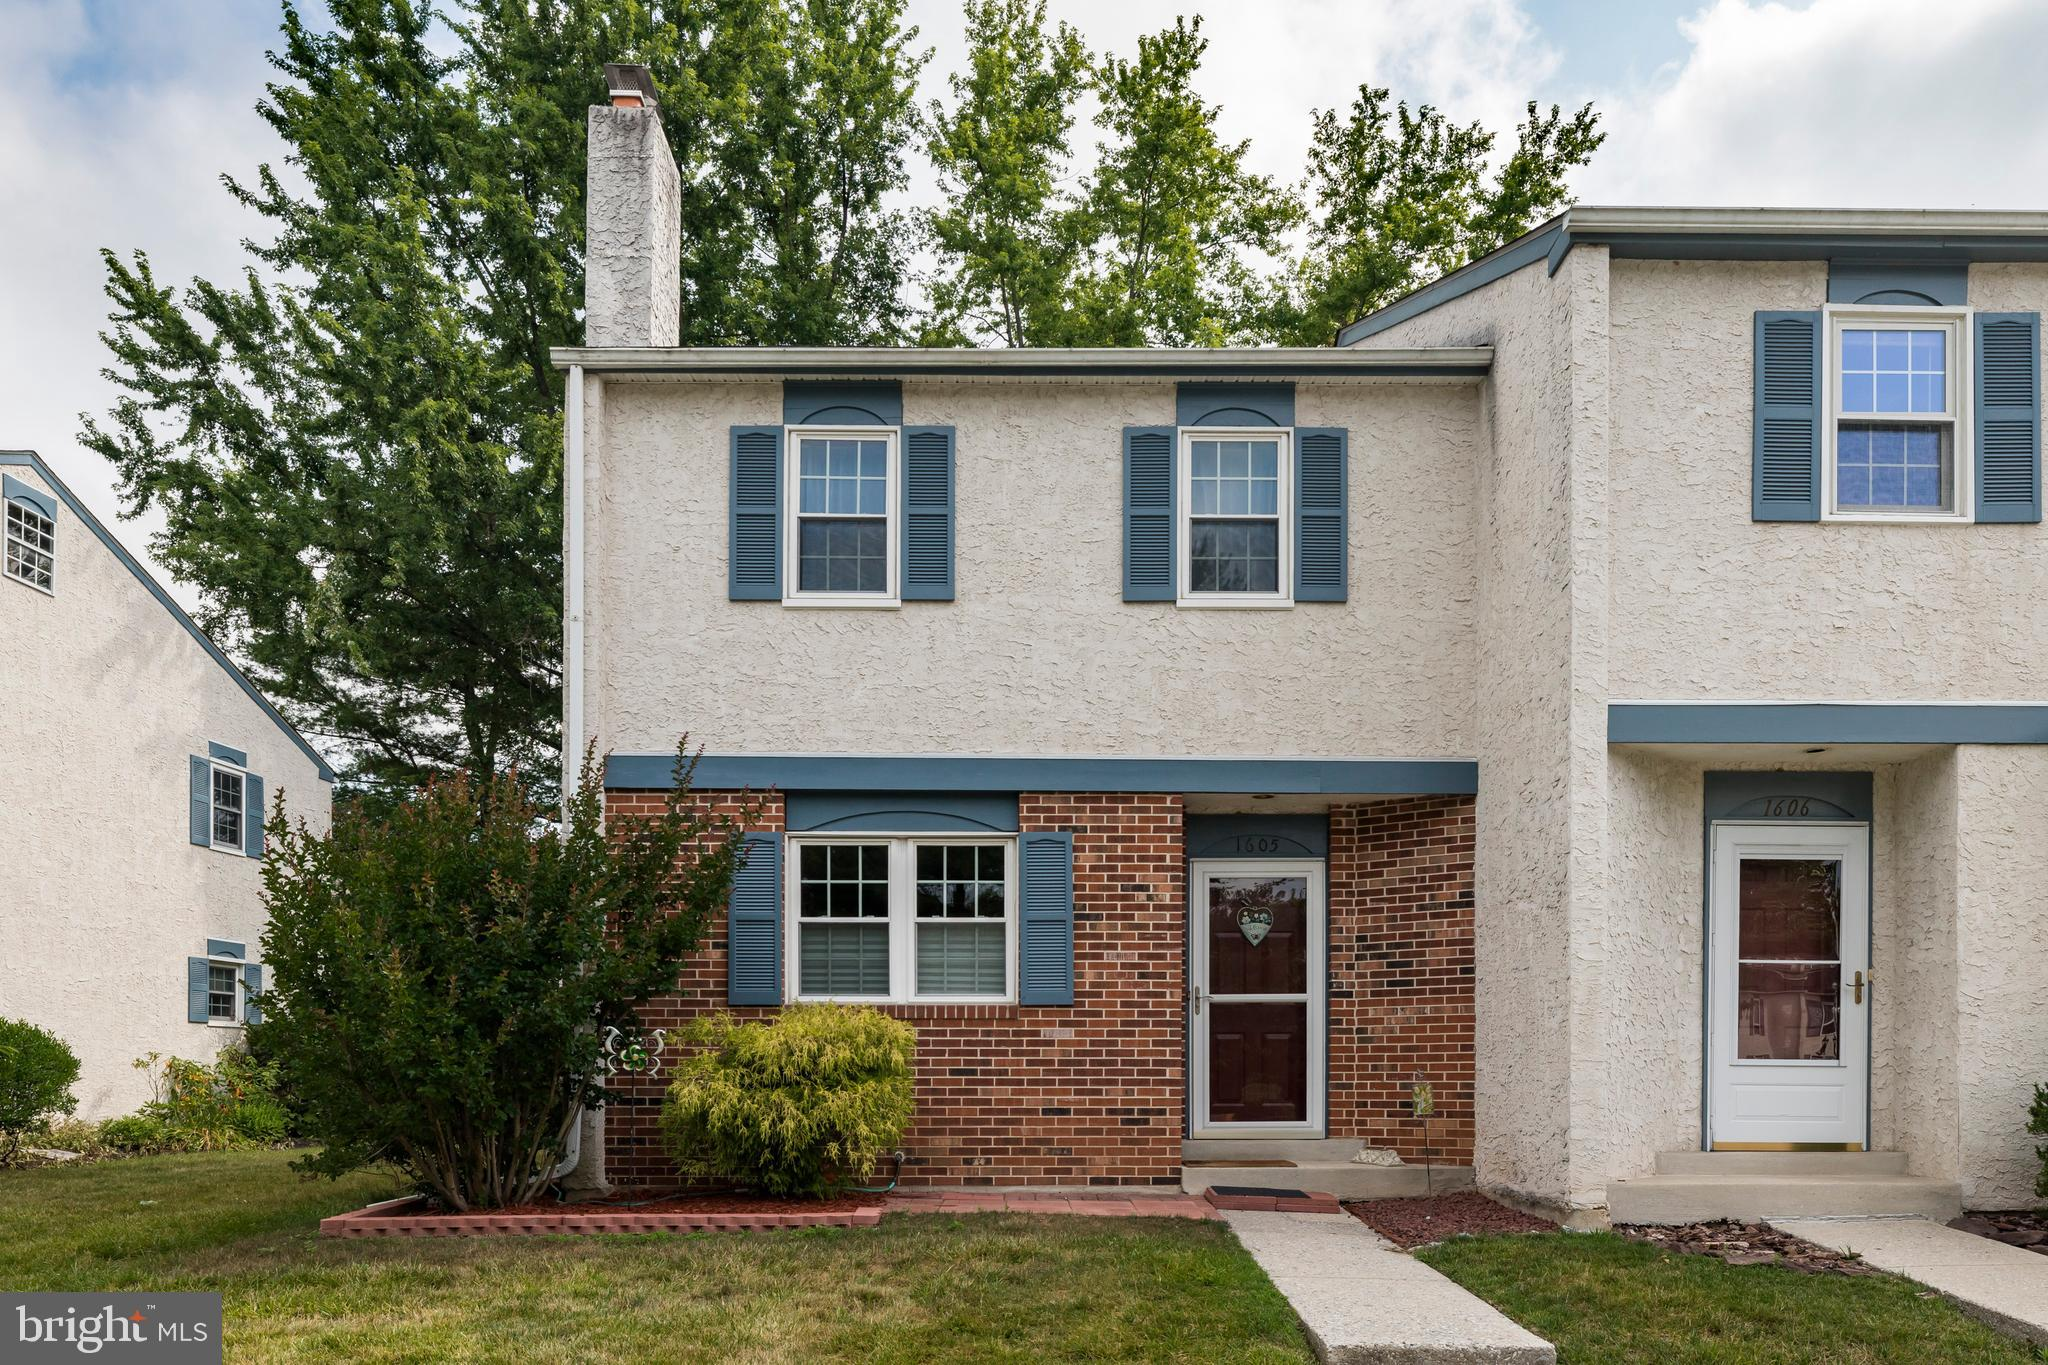 Here's your opportunity to own a townhome in sought-after Covered Bridge Crossing! This wonderful end unit boasts many updates including newer carpeting throughout, newer HVAC, and recently updated granite countertops and refreshed, refaced cabinetry in 2018! Every room is spacious, from the oversized, open-layout living room with gorgeous brick, wood-burning fireplace to the large, eat-in kitchen with ample cabinet space, pantry, and newer sliding door which leads to the peaceful rear deck. The main level of the home also features a convenient half bath. On the second level, you'll find three generously-sized bedrooms, all with newer carpeting and with the main bedroom featuring two closets and access to a Jack-and-Jill bathroom with skylight. Storage won't be a problem in this home with linen closet, hall closet, pull-down attic access, and a full basement with laundry facilities! There are many reasons this community in East Pikeland Township is highly coveted; among them the access to walking trails and French Creek, community playground, basketball courts, and its proximity to bustling downtown Phoenixville!